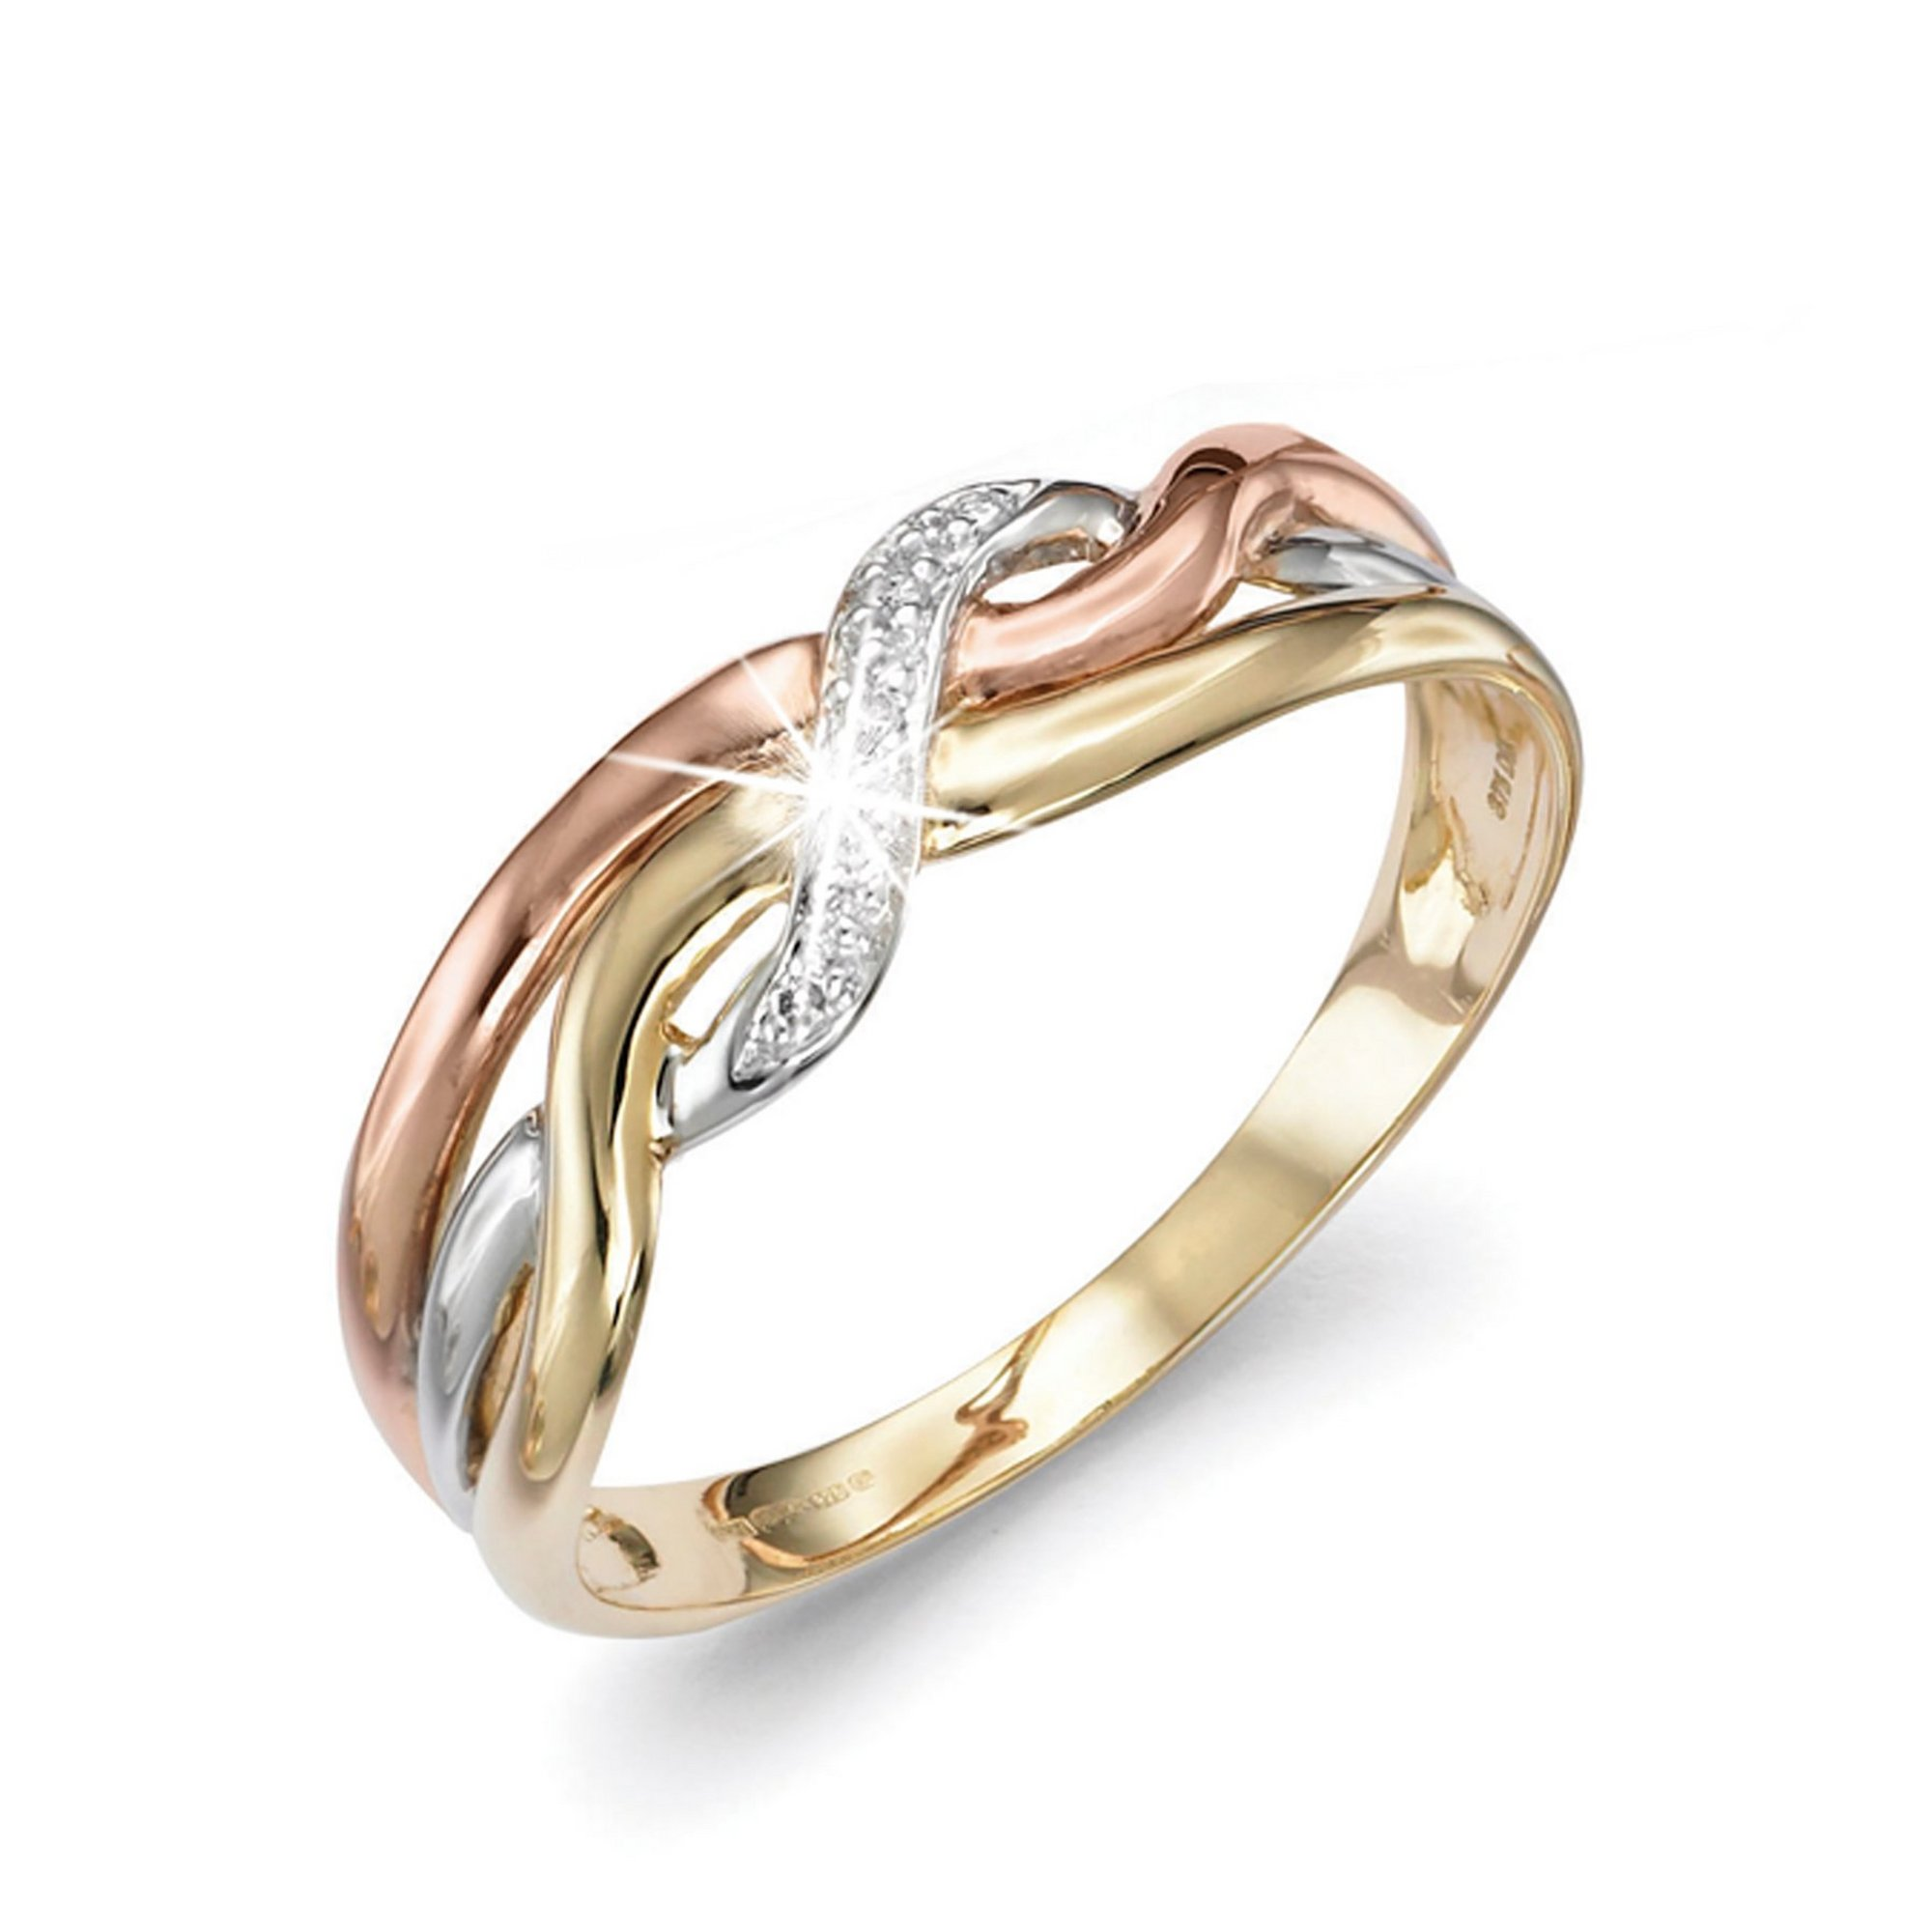 Image of 9ct 3 Colour Gold Ring